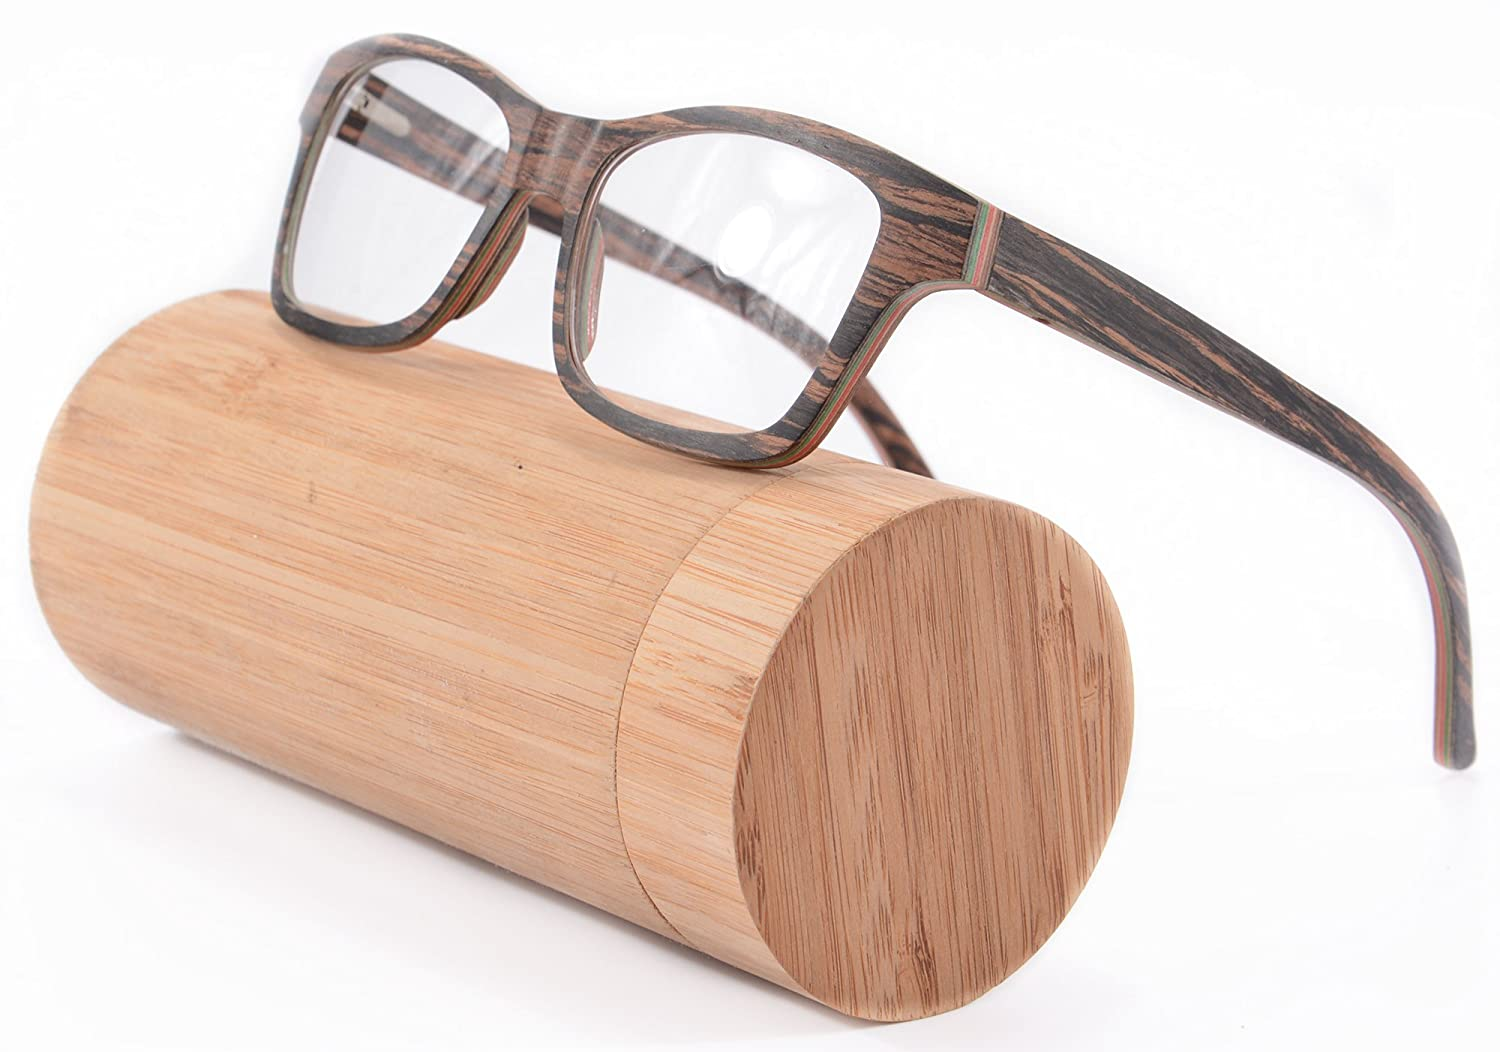 amazoncom 11 layers wood frame glasses walnut and maple wayfarers eyeglasses for men 6167maple walnut clothing - Wood Frame Glasses